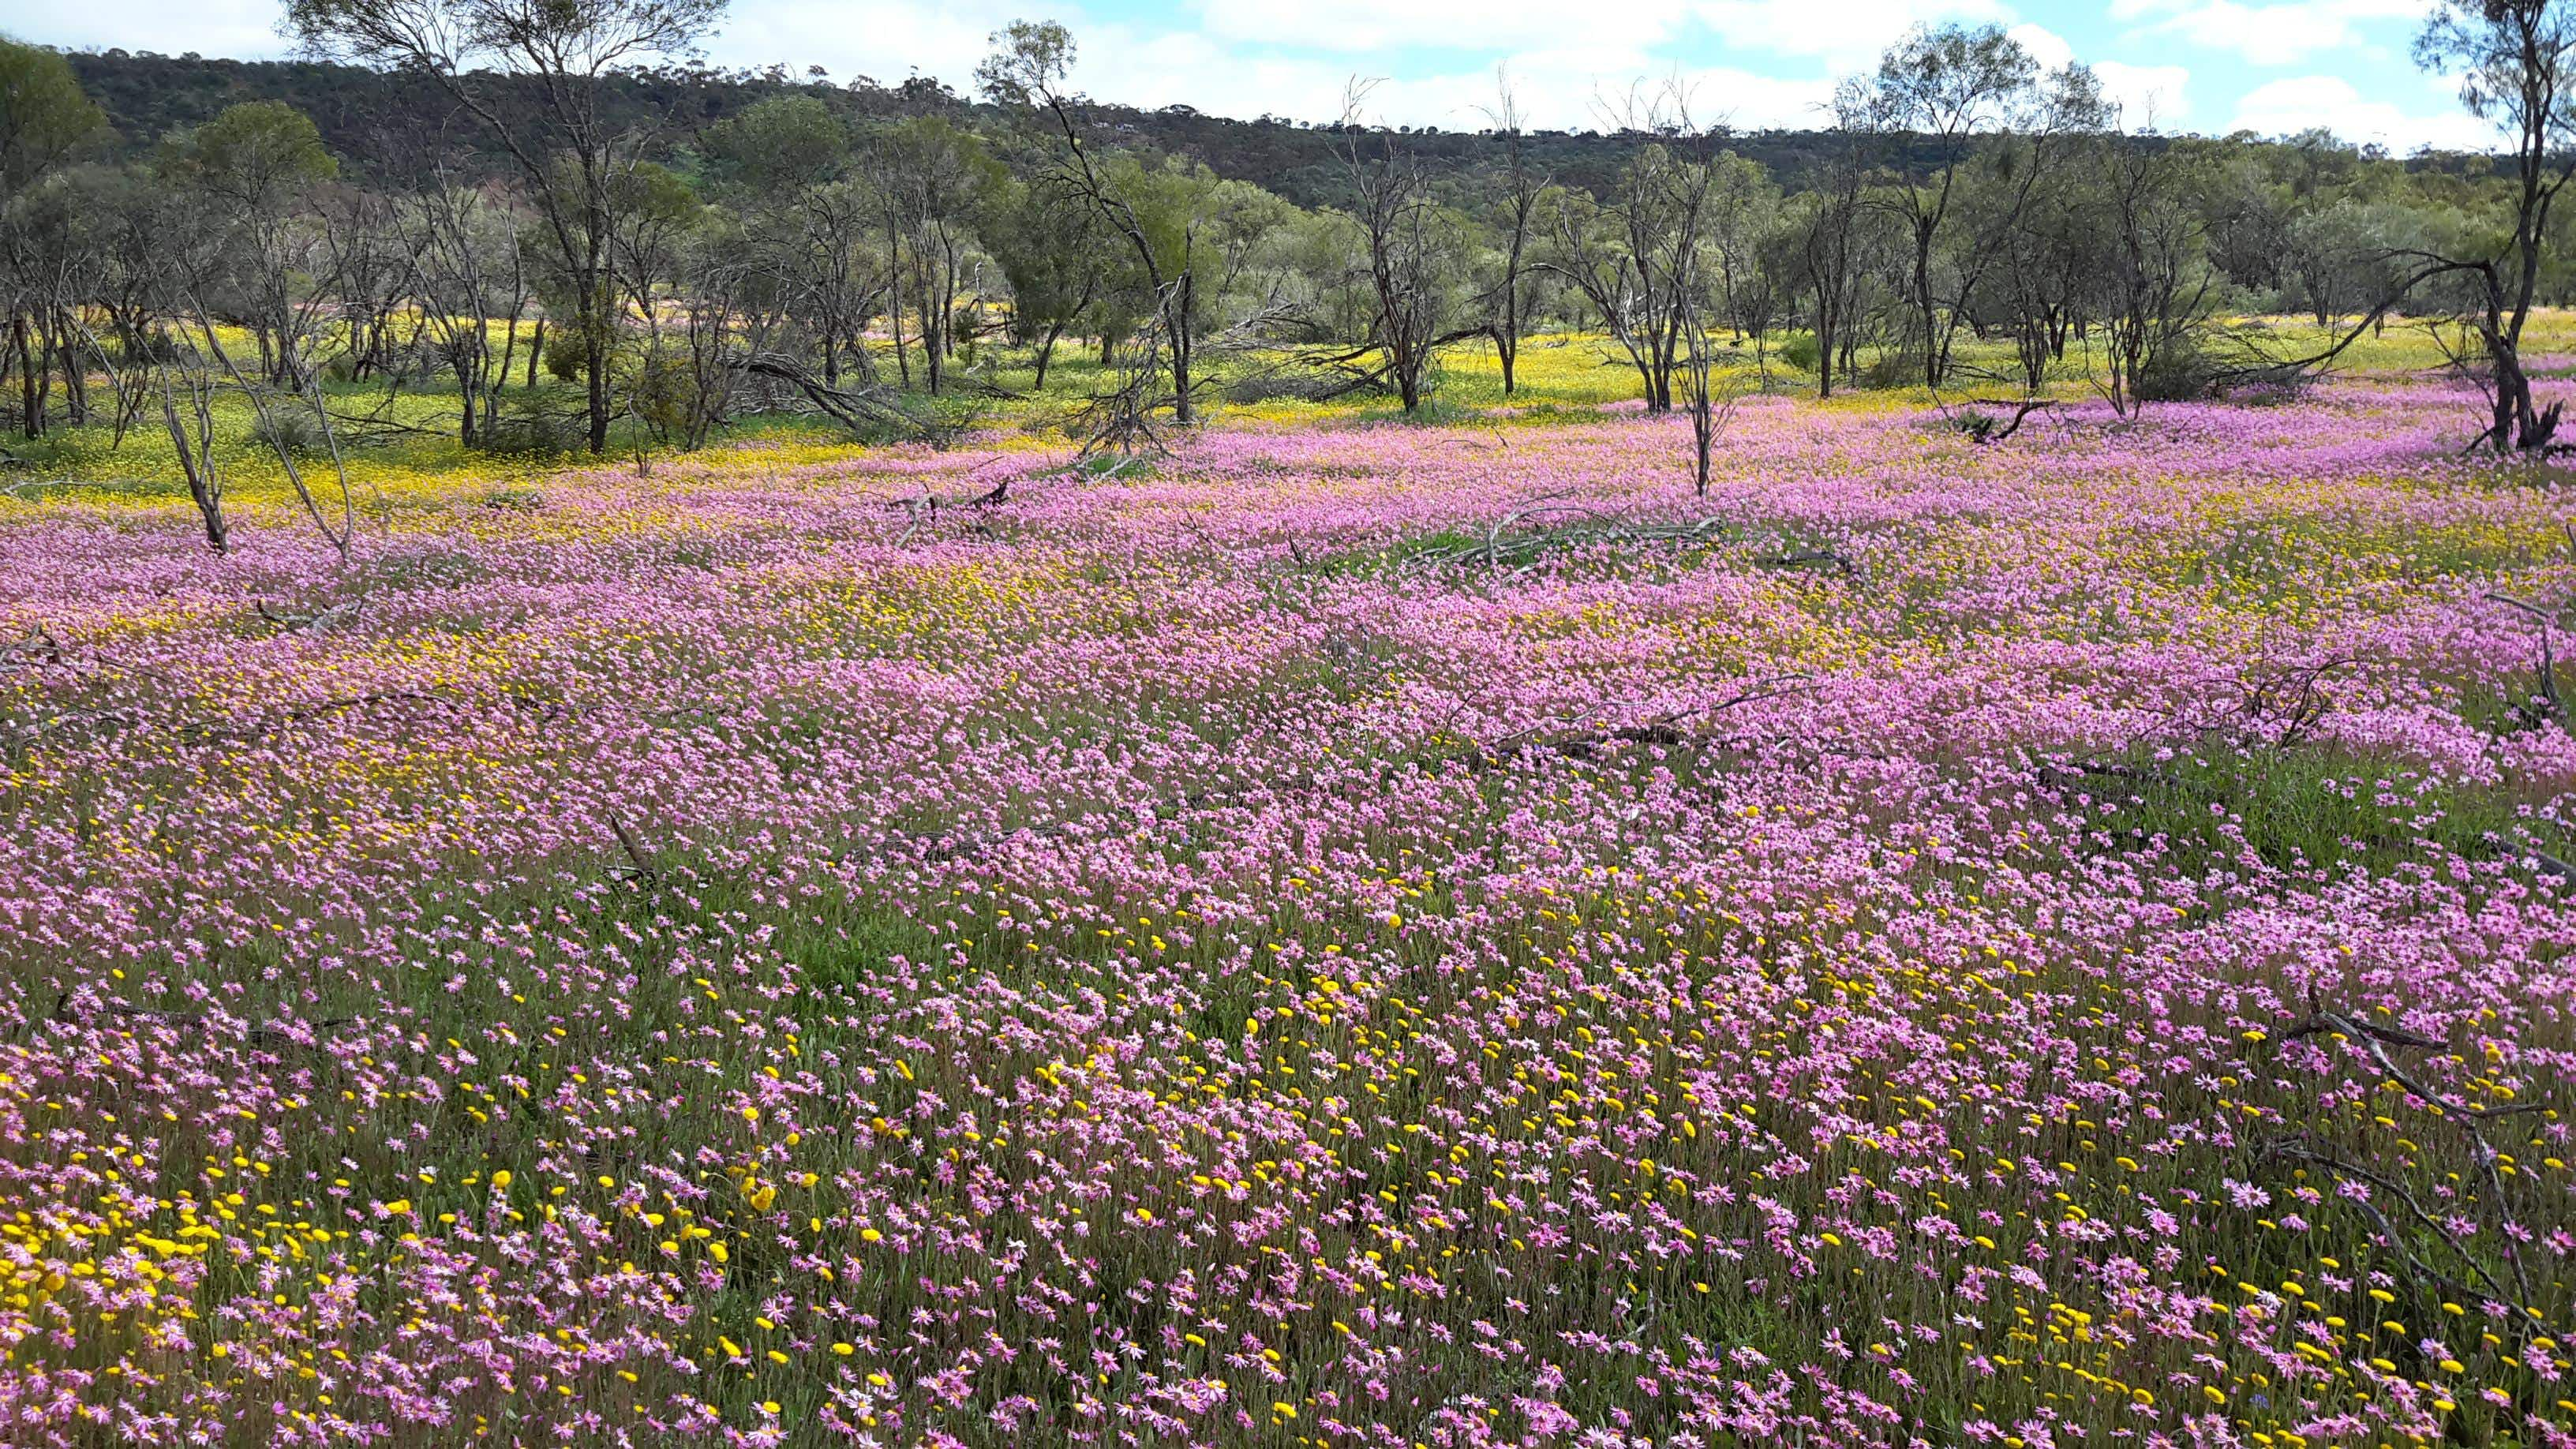 The wildflowers of Western Australia are the best in a decade